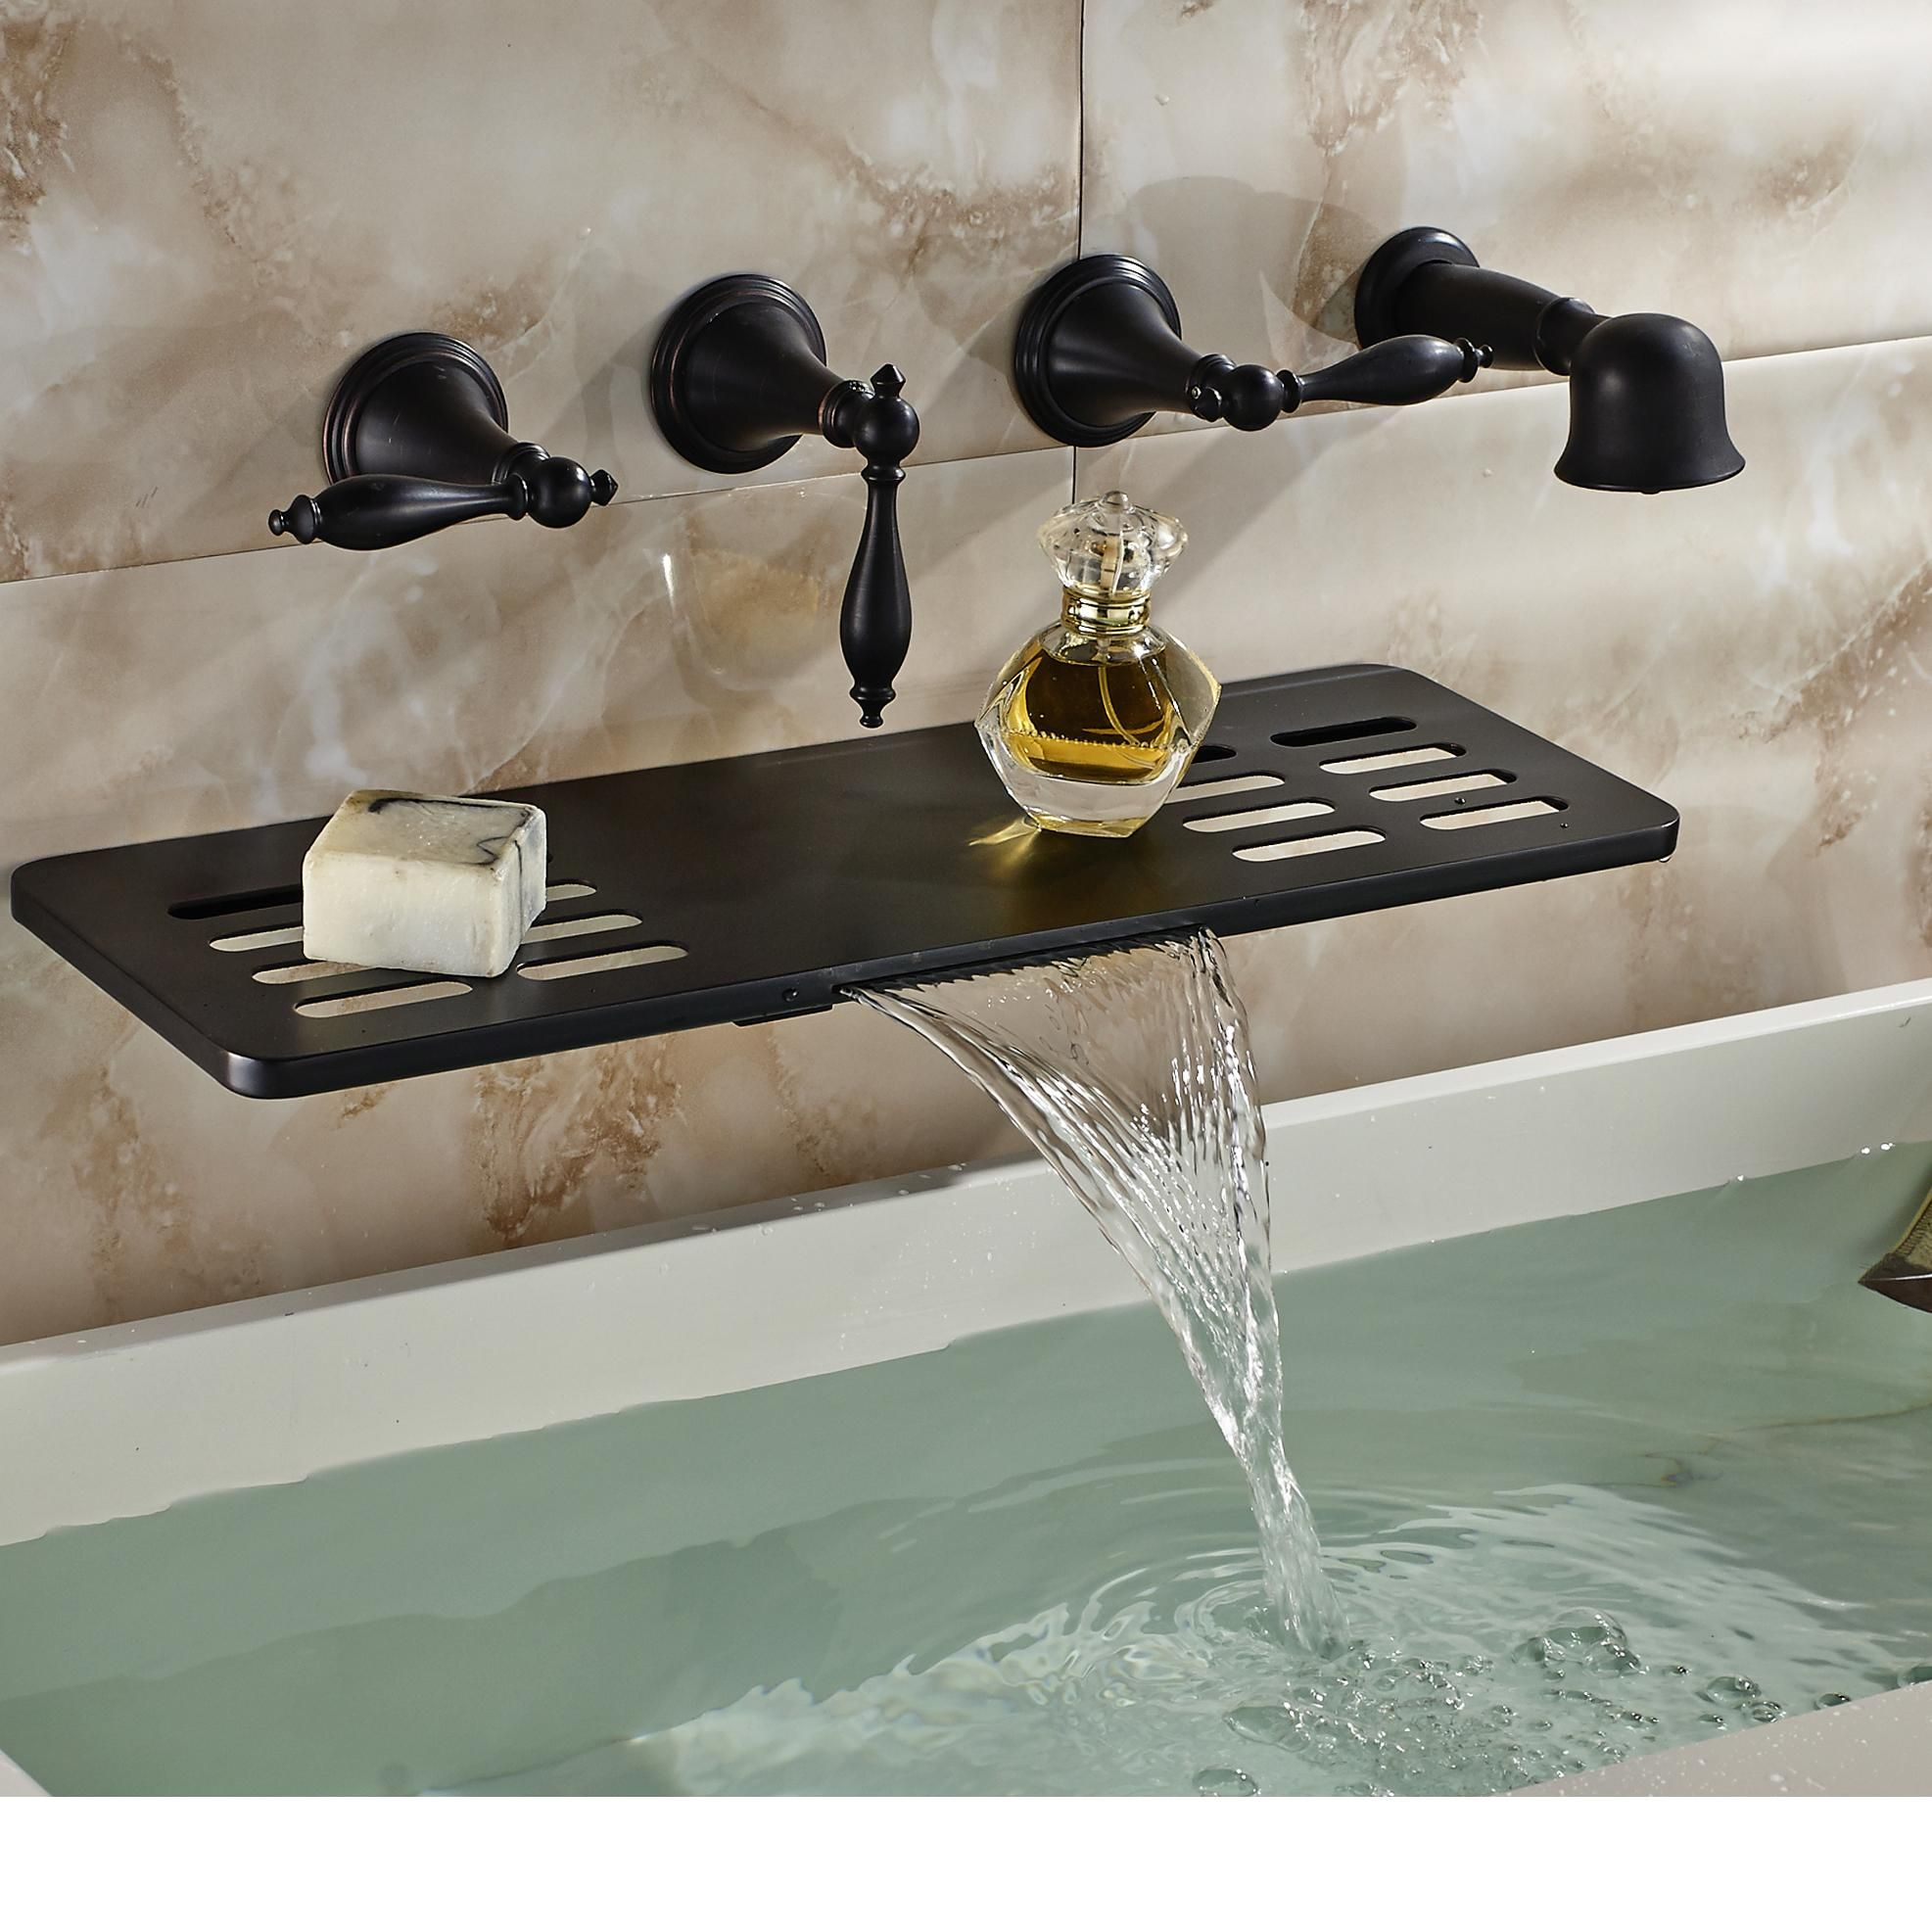 Choosing Wholesale Wholesale And Retail Wall Mounted Bathroom Tub Faucet  Oil Rubbed Bronze Waterfall Spout W/ Soap Dish Holder Hand Shower Sprayer  Online?